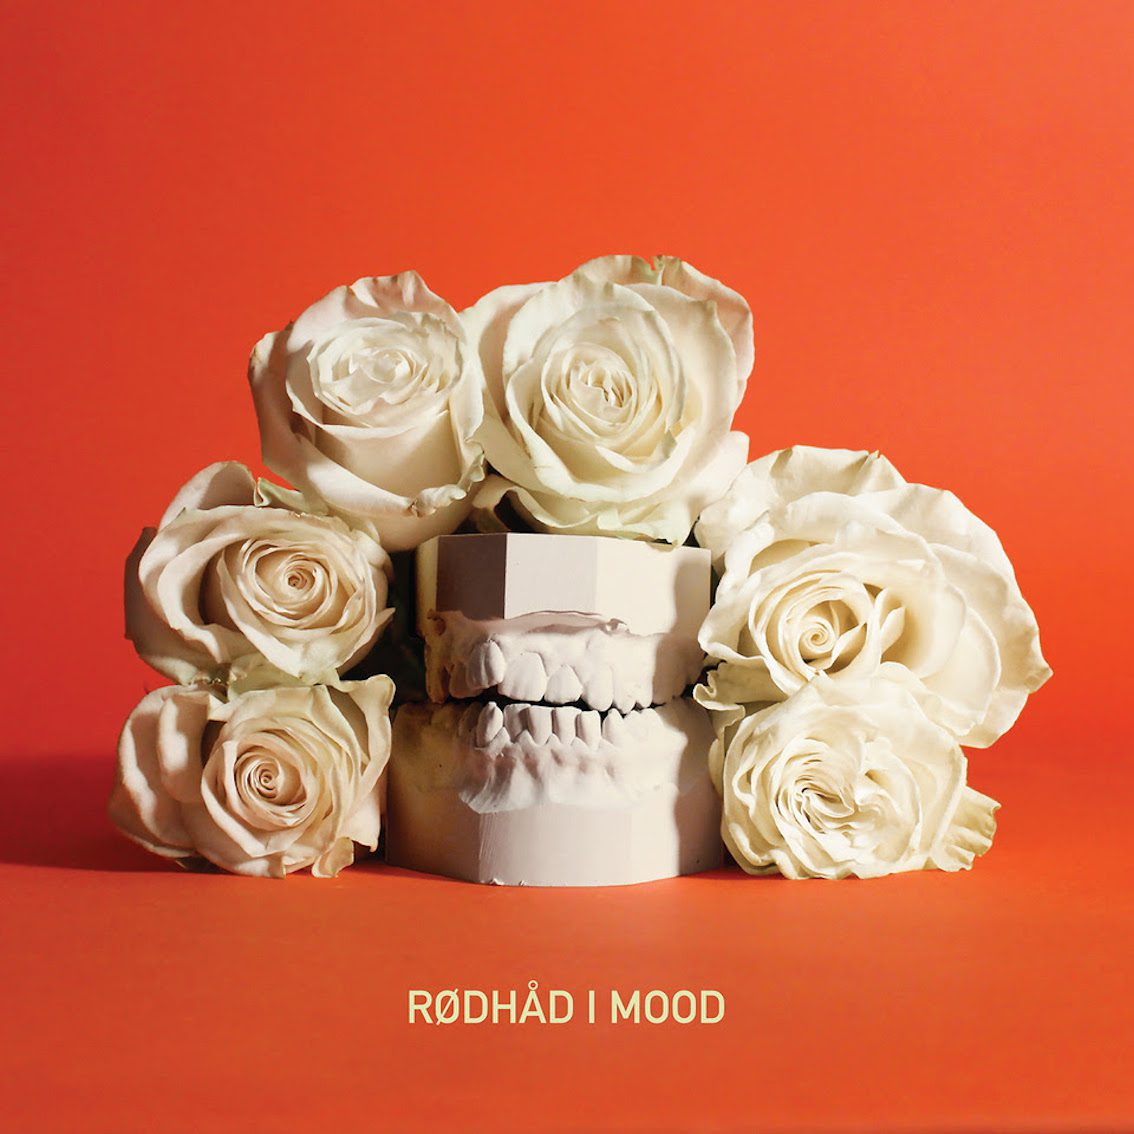 Ambient project Rødhåd launches free download album 'Mood - WSNWGBTZ001'